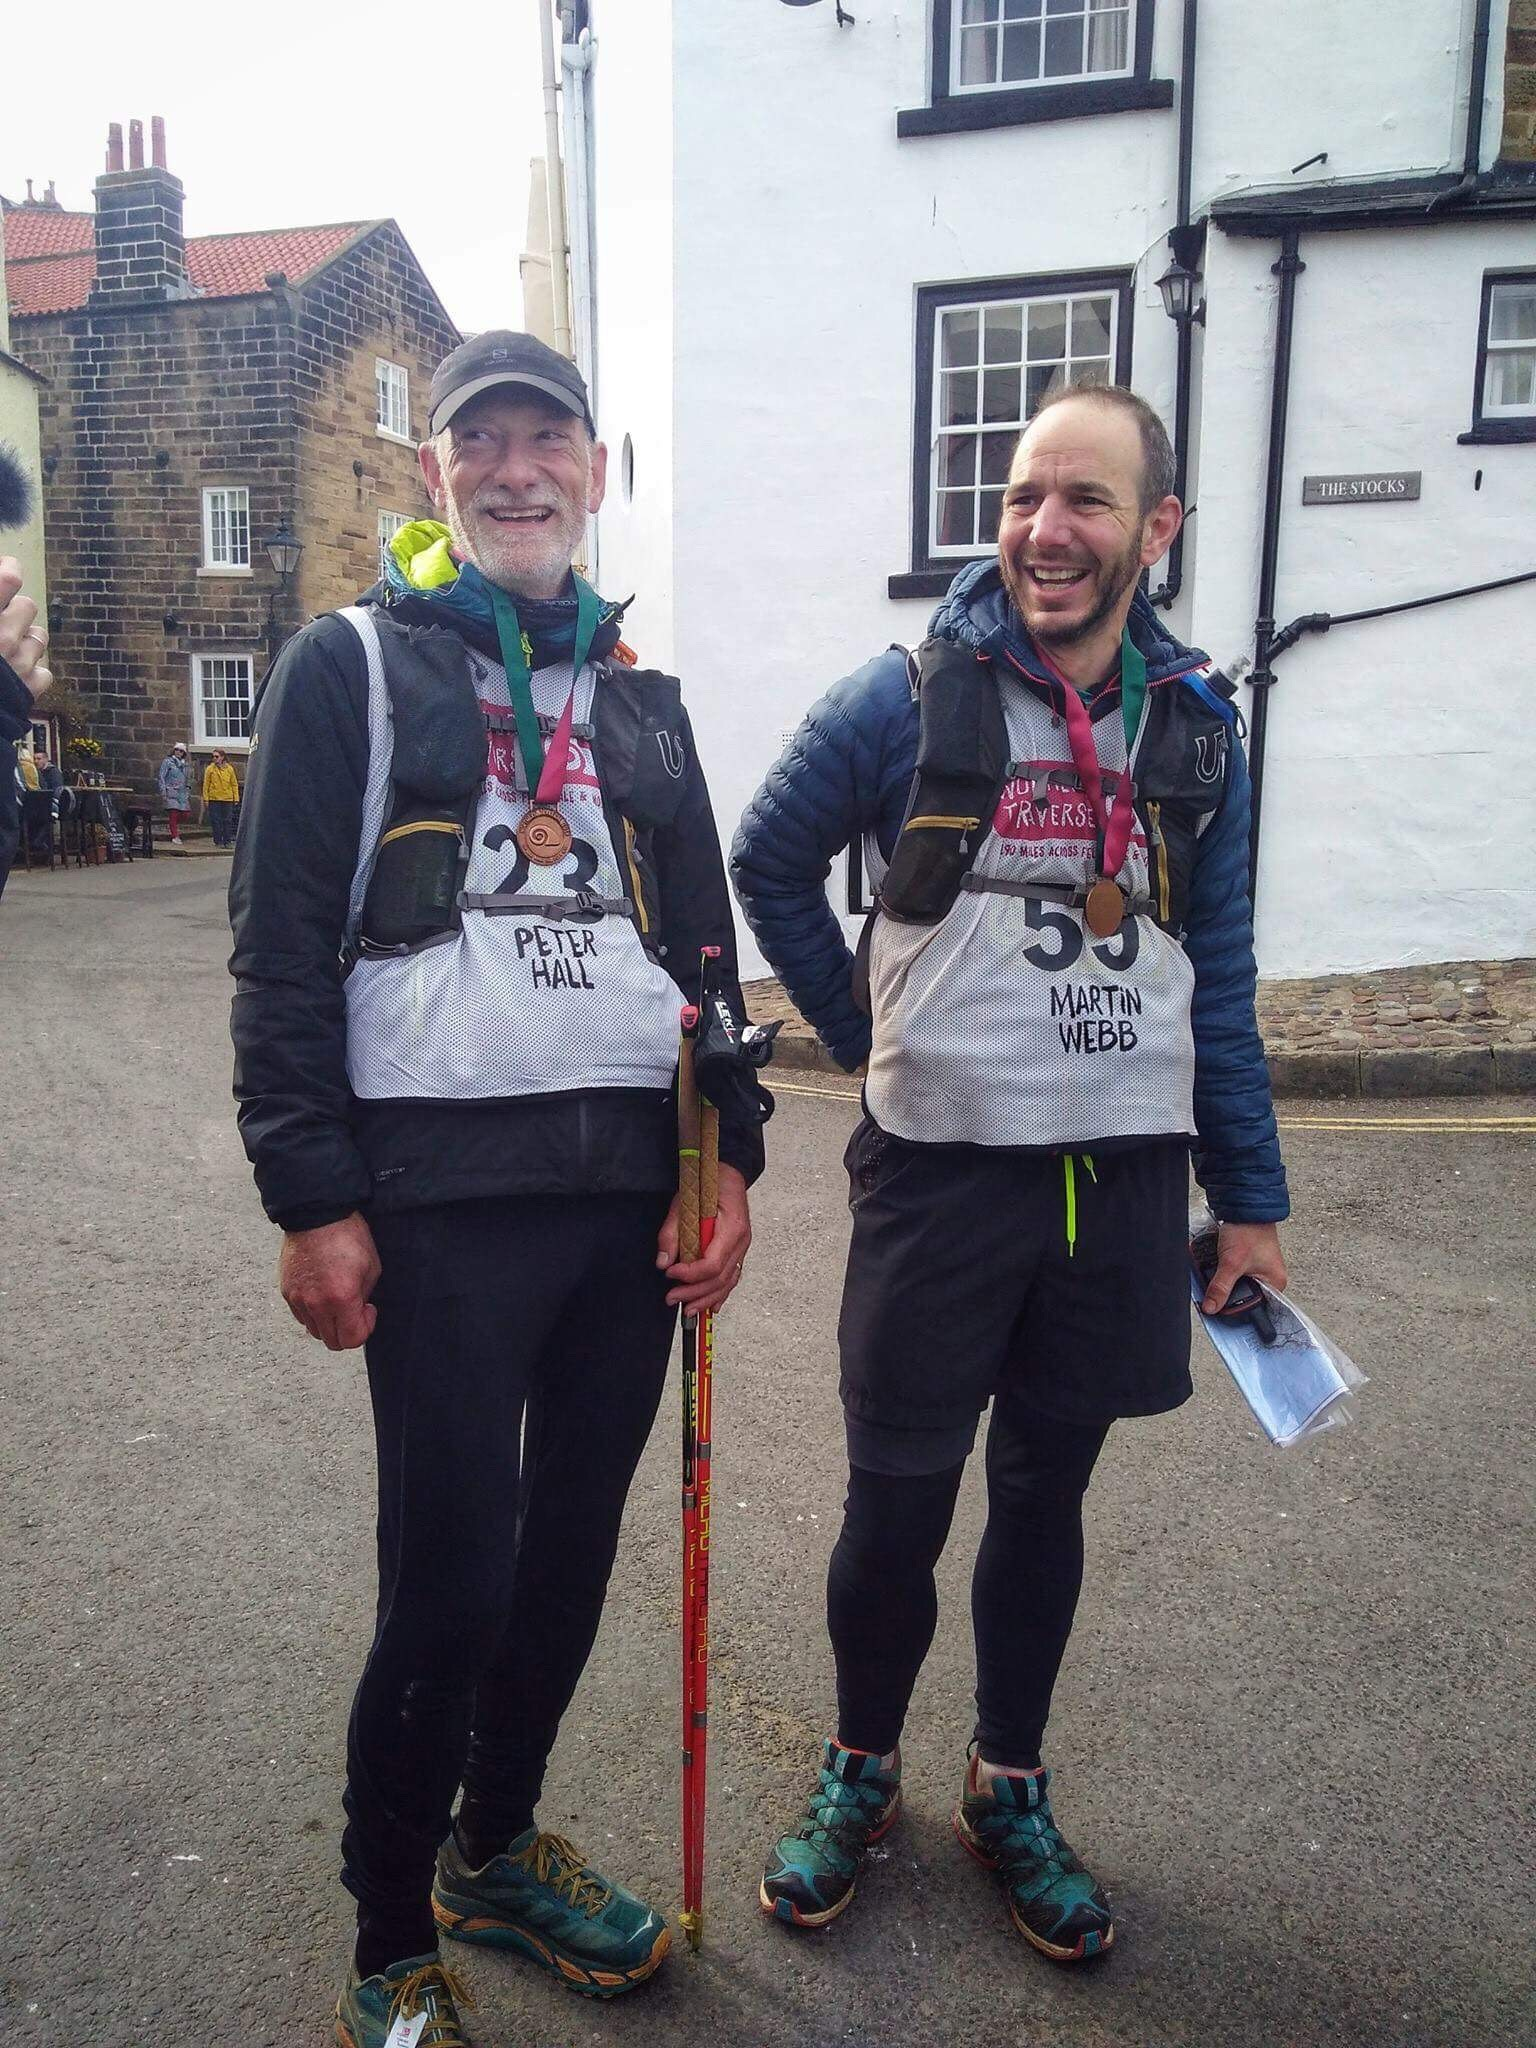 FINISHED: Peter Hall and Martin Webb at the conclusion of their 190-mile challenge.